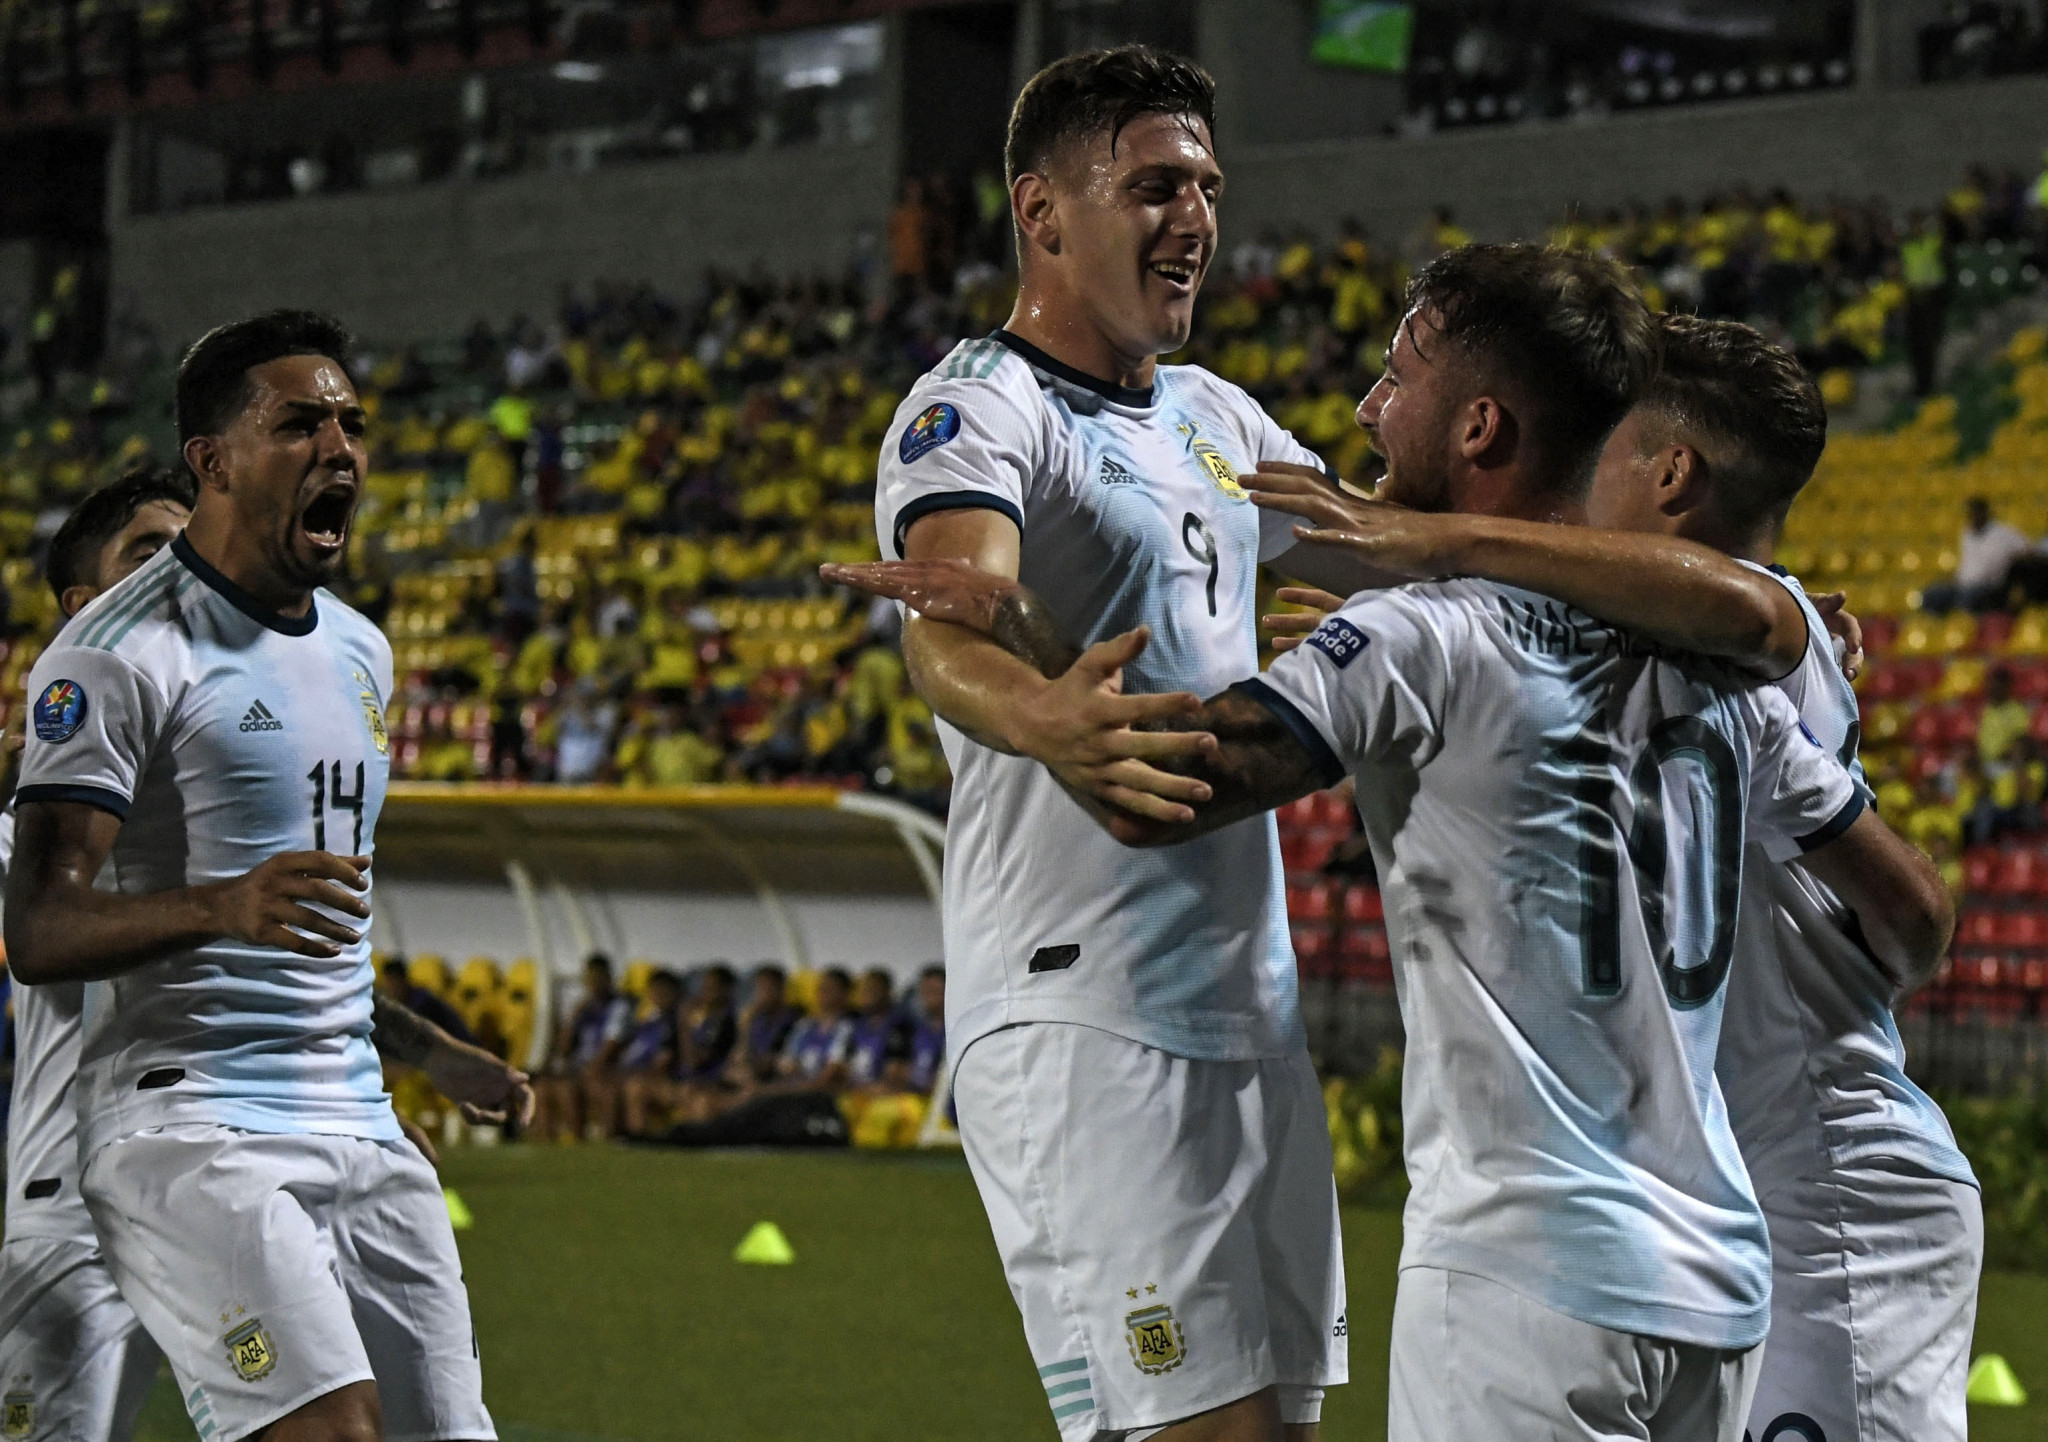 Alexis Mac Allister scored twice as Argentina beat Uruguay 3-2 ©Getty Images